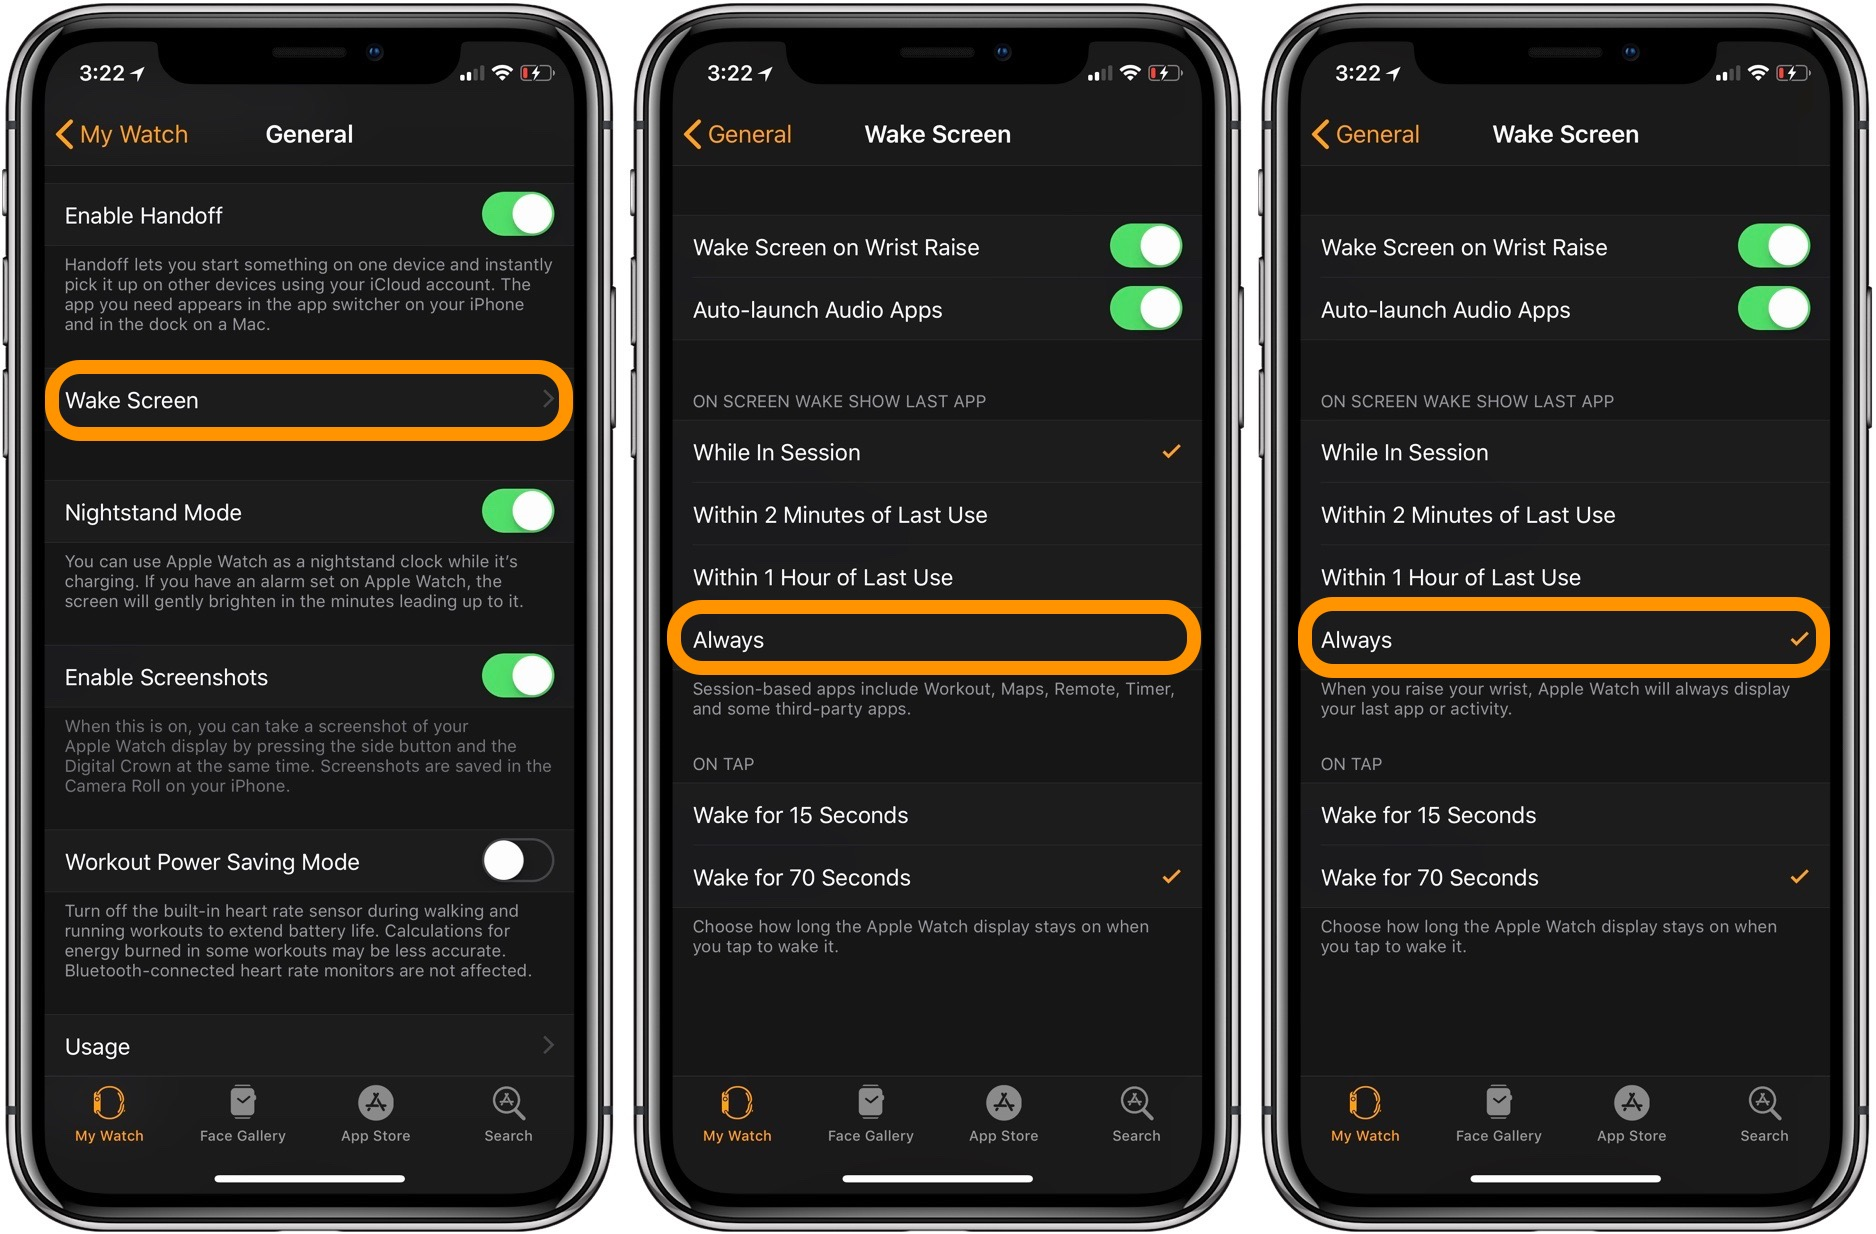 Apple Watch: How to always show last app used on wake screen - 9to5Mac